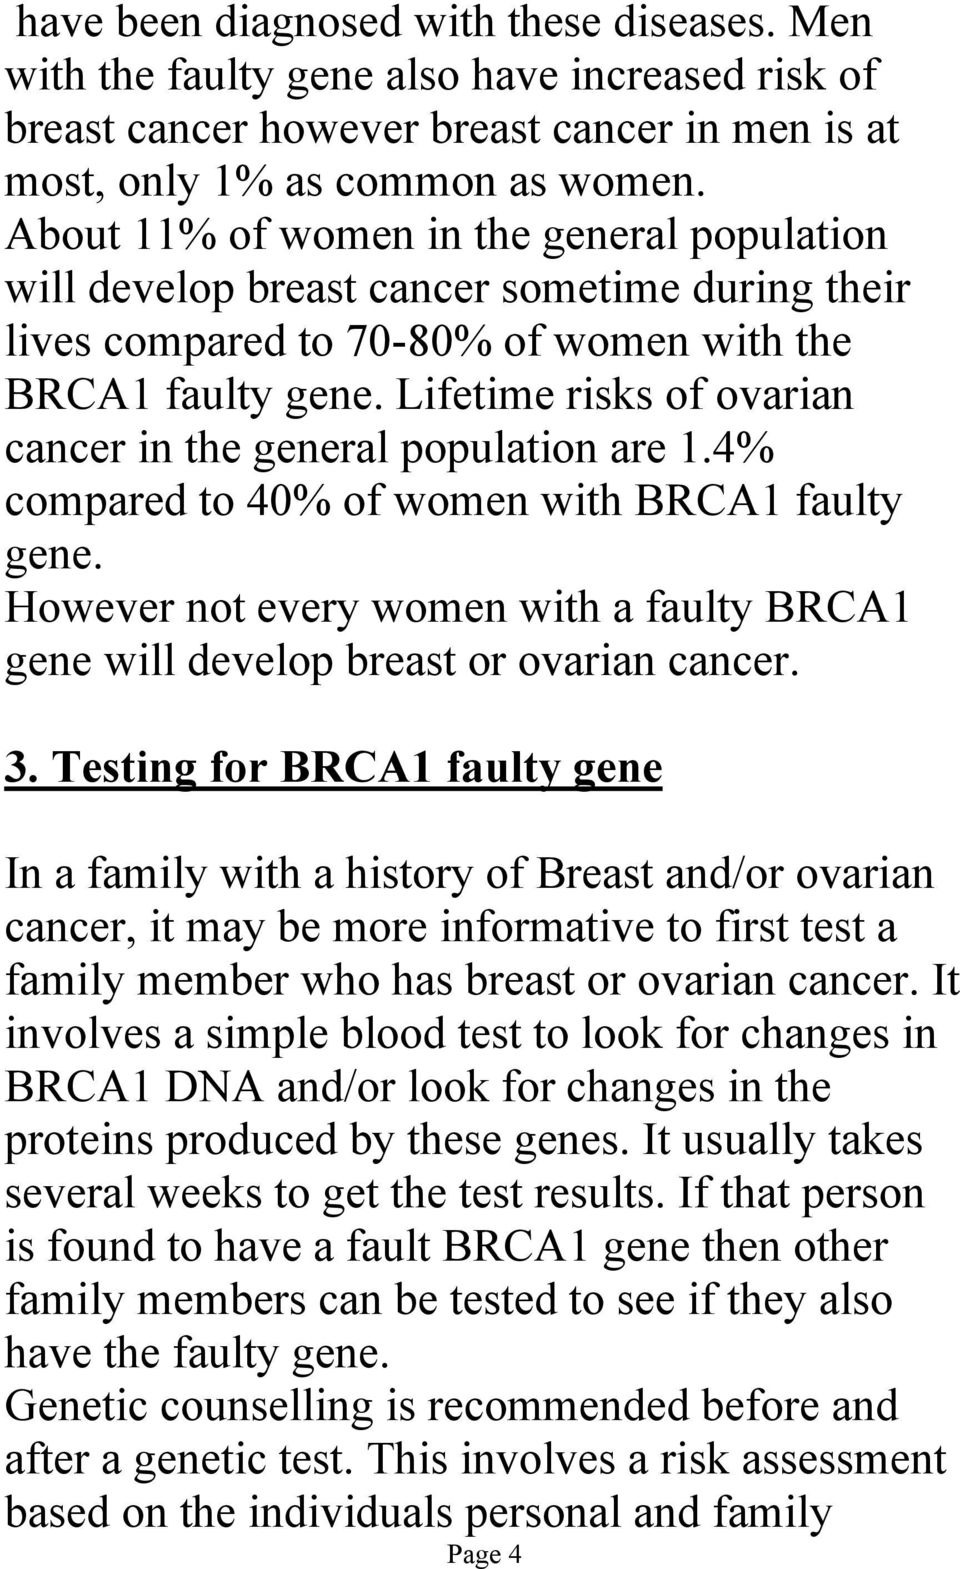 Lifetime risks of ovarian cancer in the general population are 1.4% compared to 40% of women with BRCA1 faulty gene.